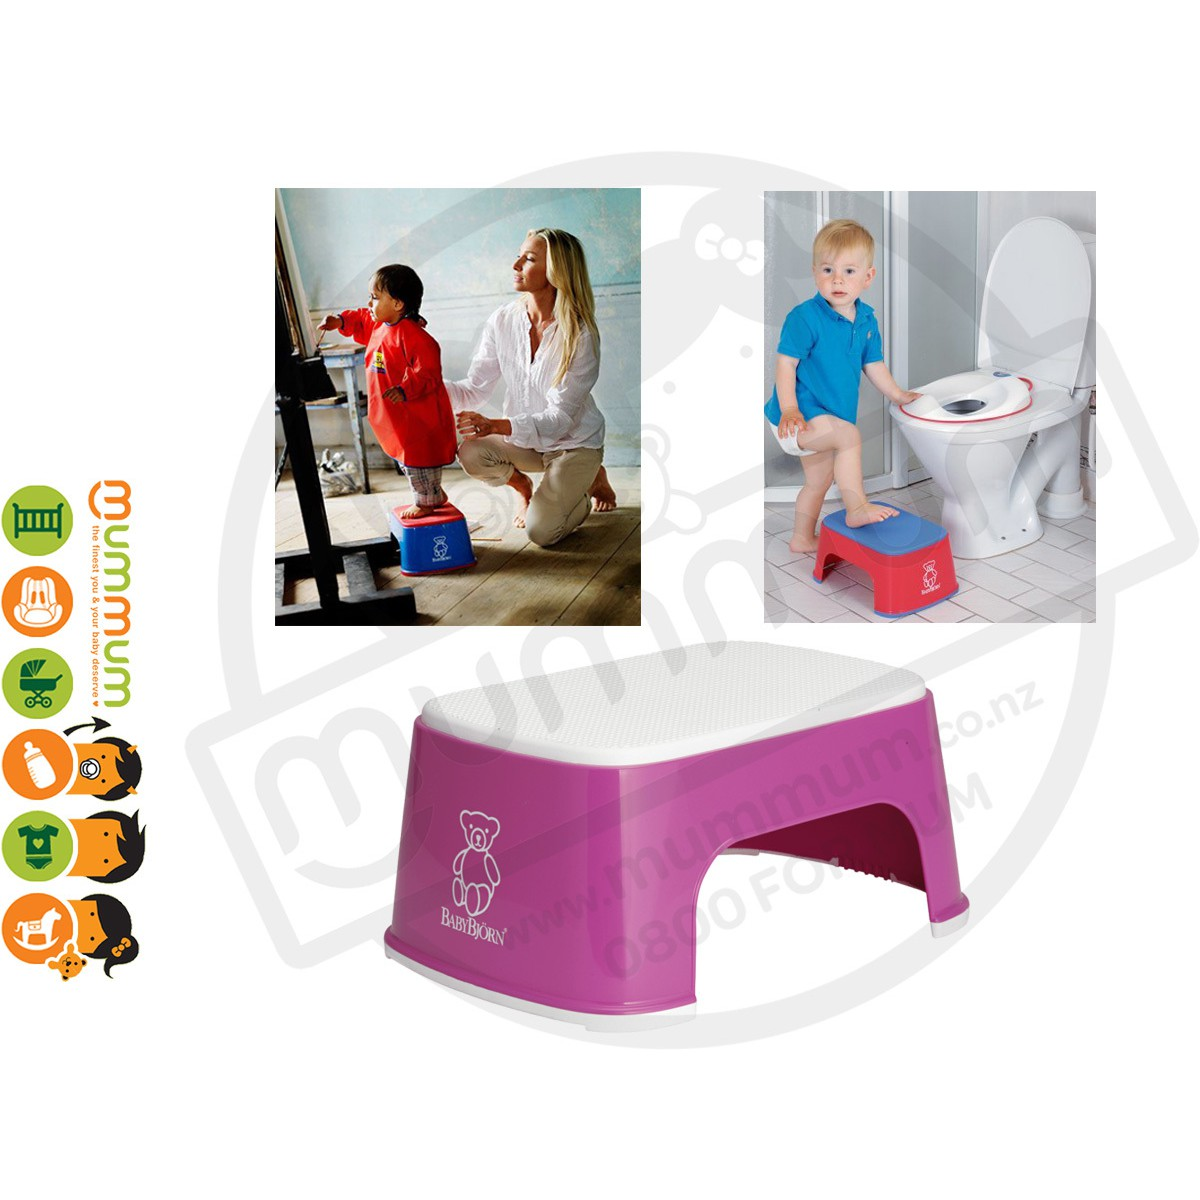 a06a0a3fa7c BabyBjorn Child Non-slip Safe Step Stool Pink